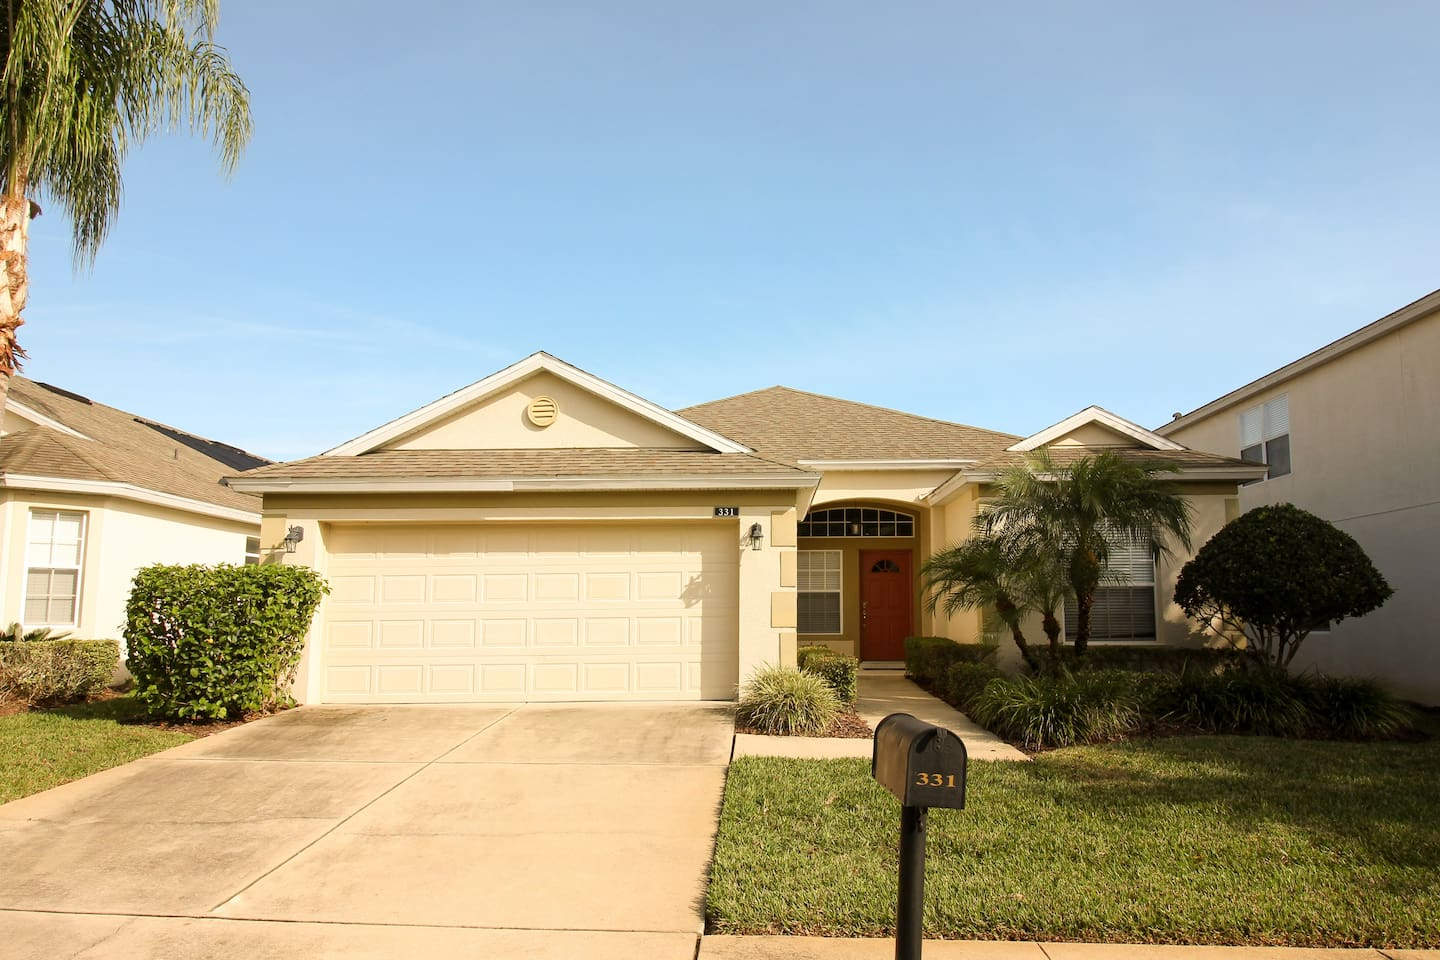 3 bed 2 bath home in gated community